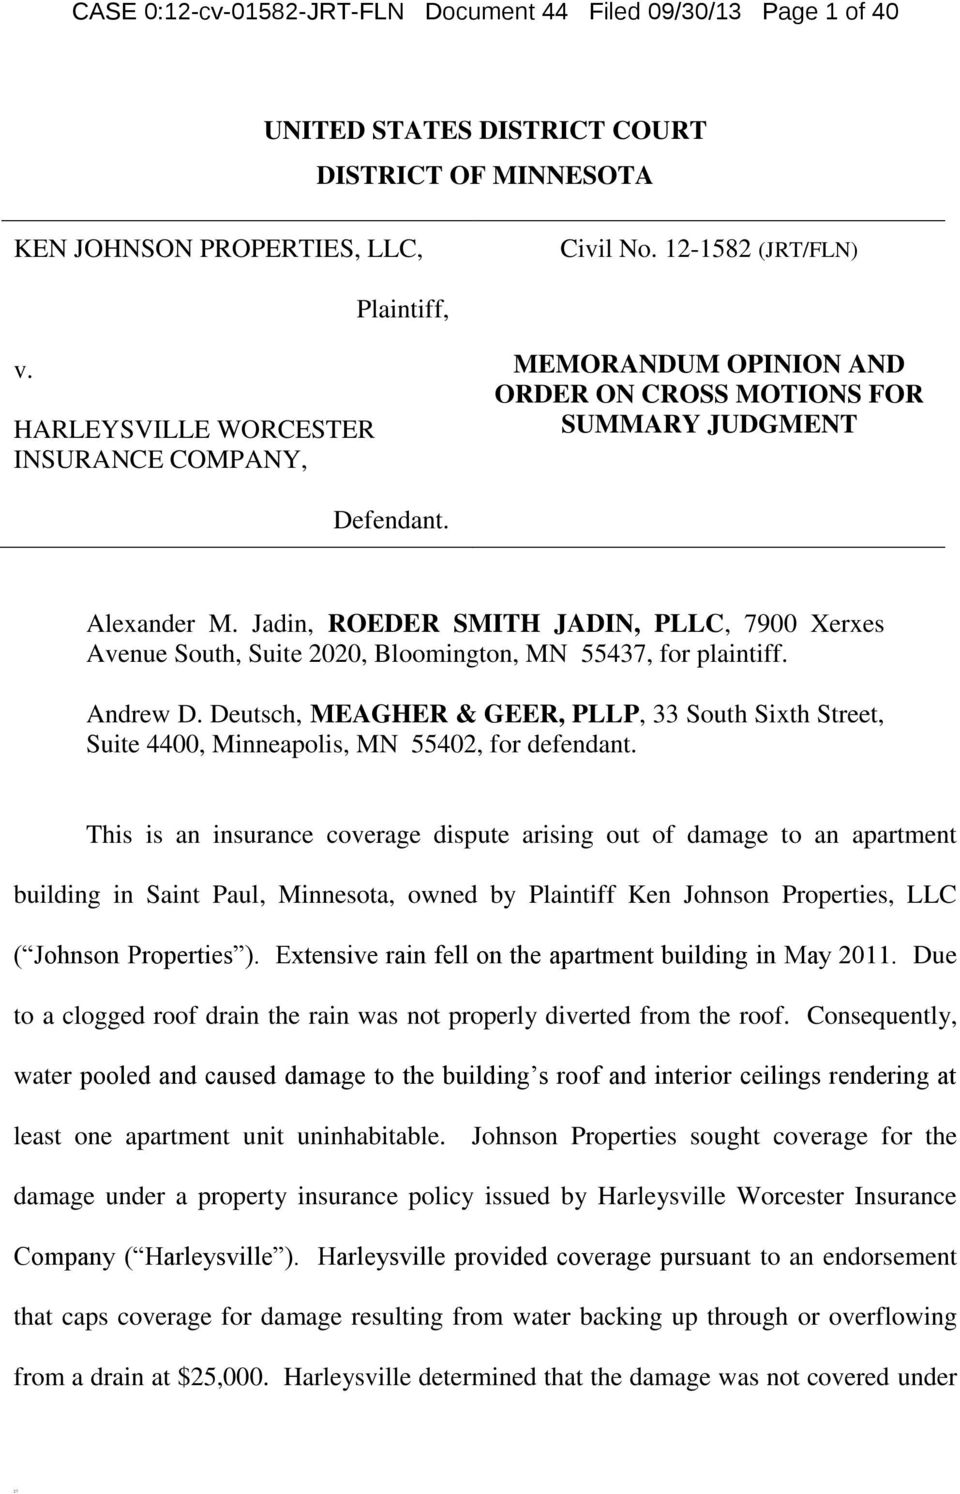 Jadin, ROEDER SMITH JADIN, PLLC, 7900 Xerxes Avenue South, Suite 2020, Bloomington, MN 55437, for plaintiff. Andrew D.